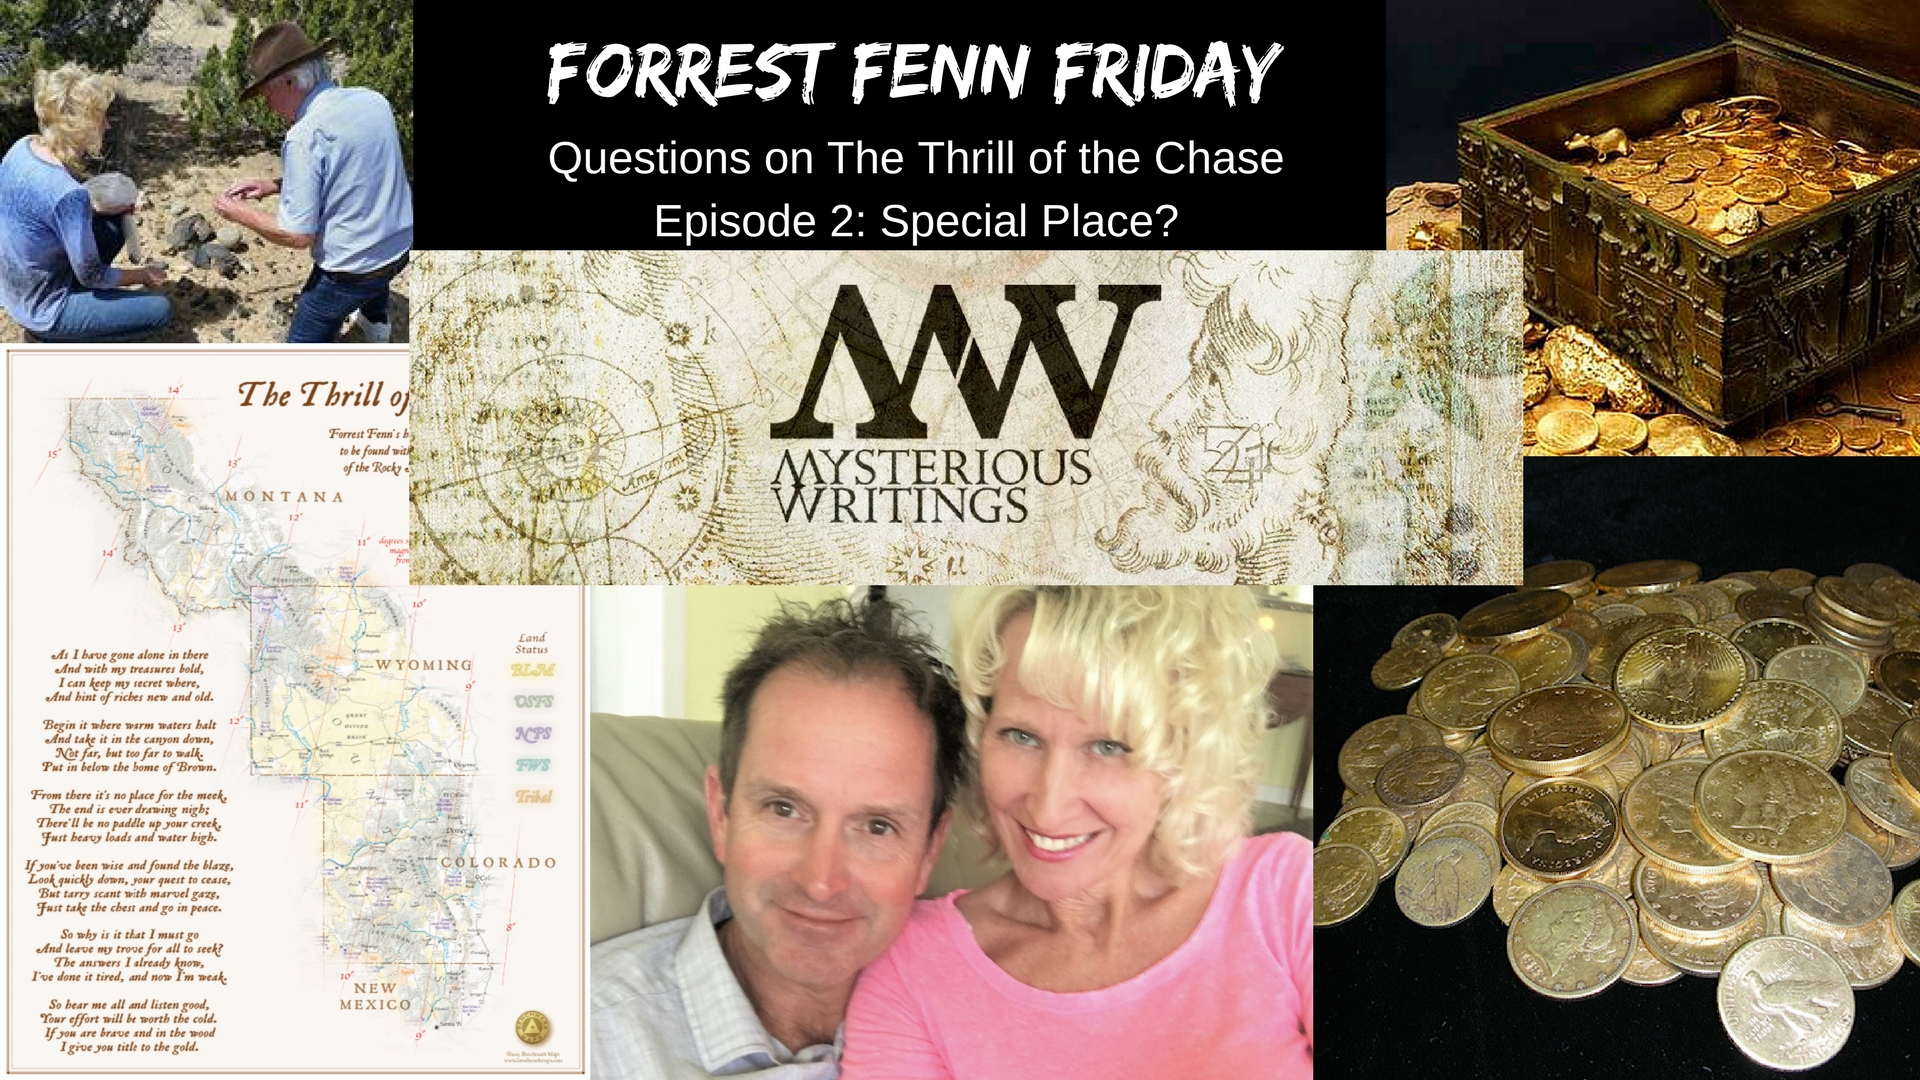 Forrest Fenn Friday: Questions on The Thrill of the Chase